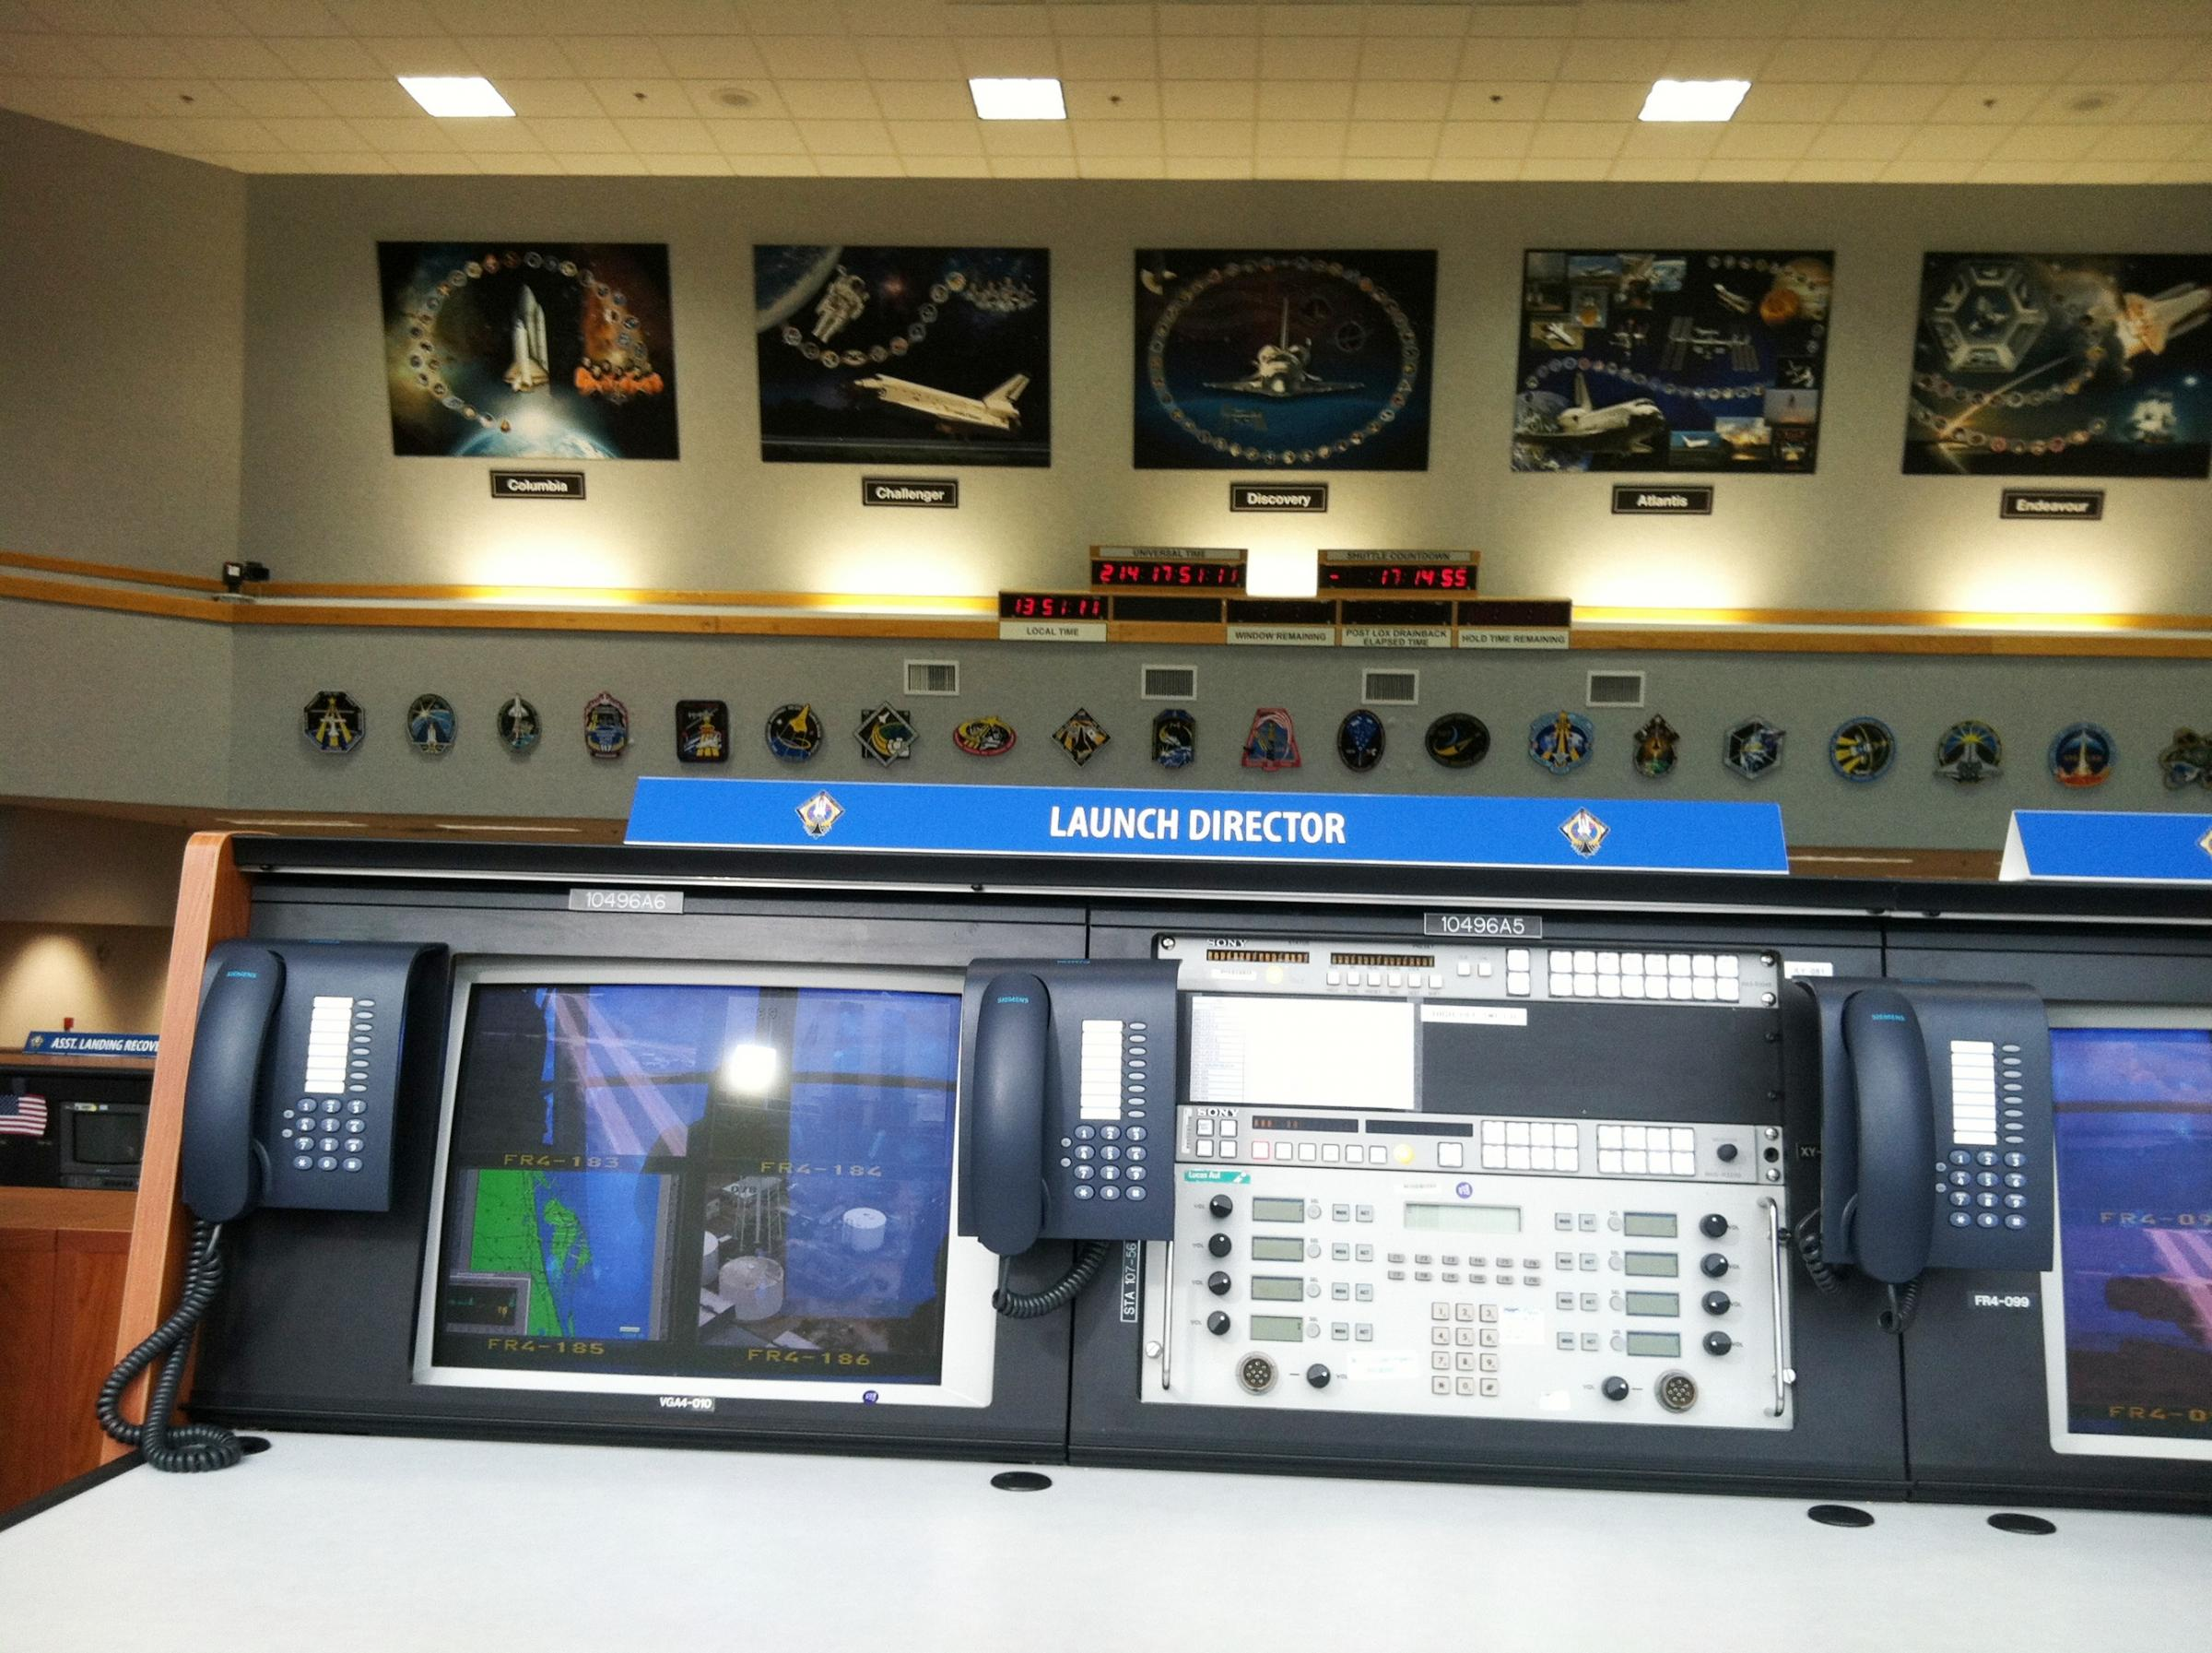 Kennedy Space Center Launches Tours Of Control Room